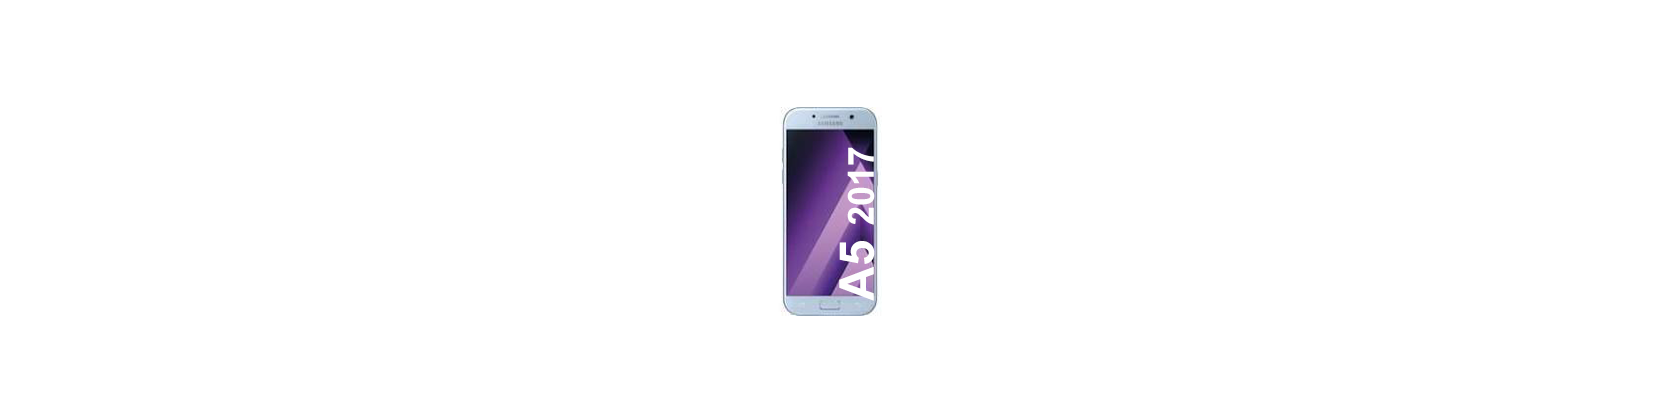 Spare parts for Samsung Galaxy A5 2017 A520F